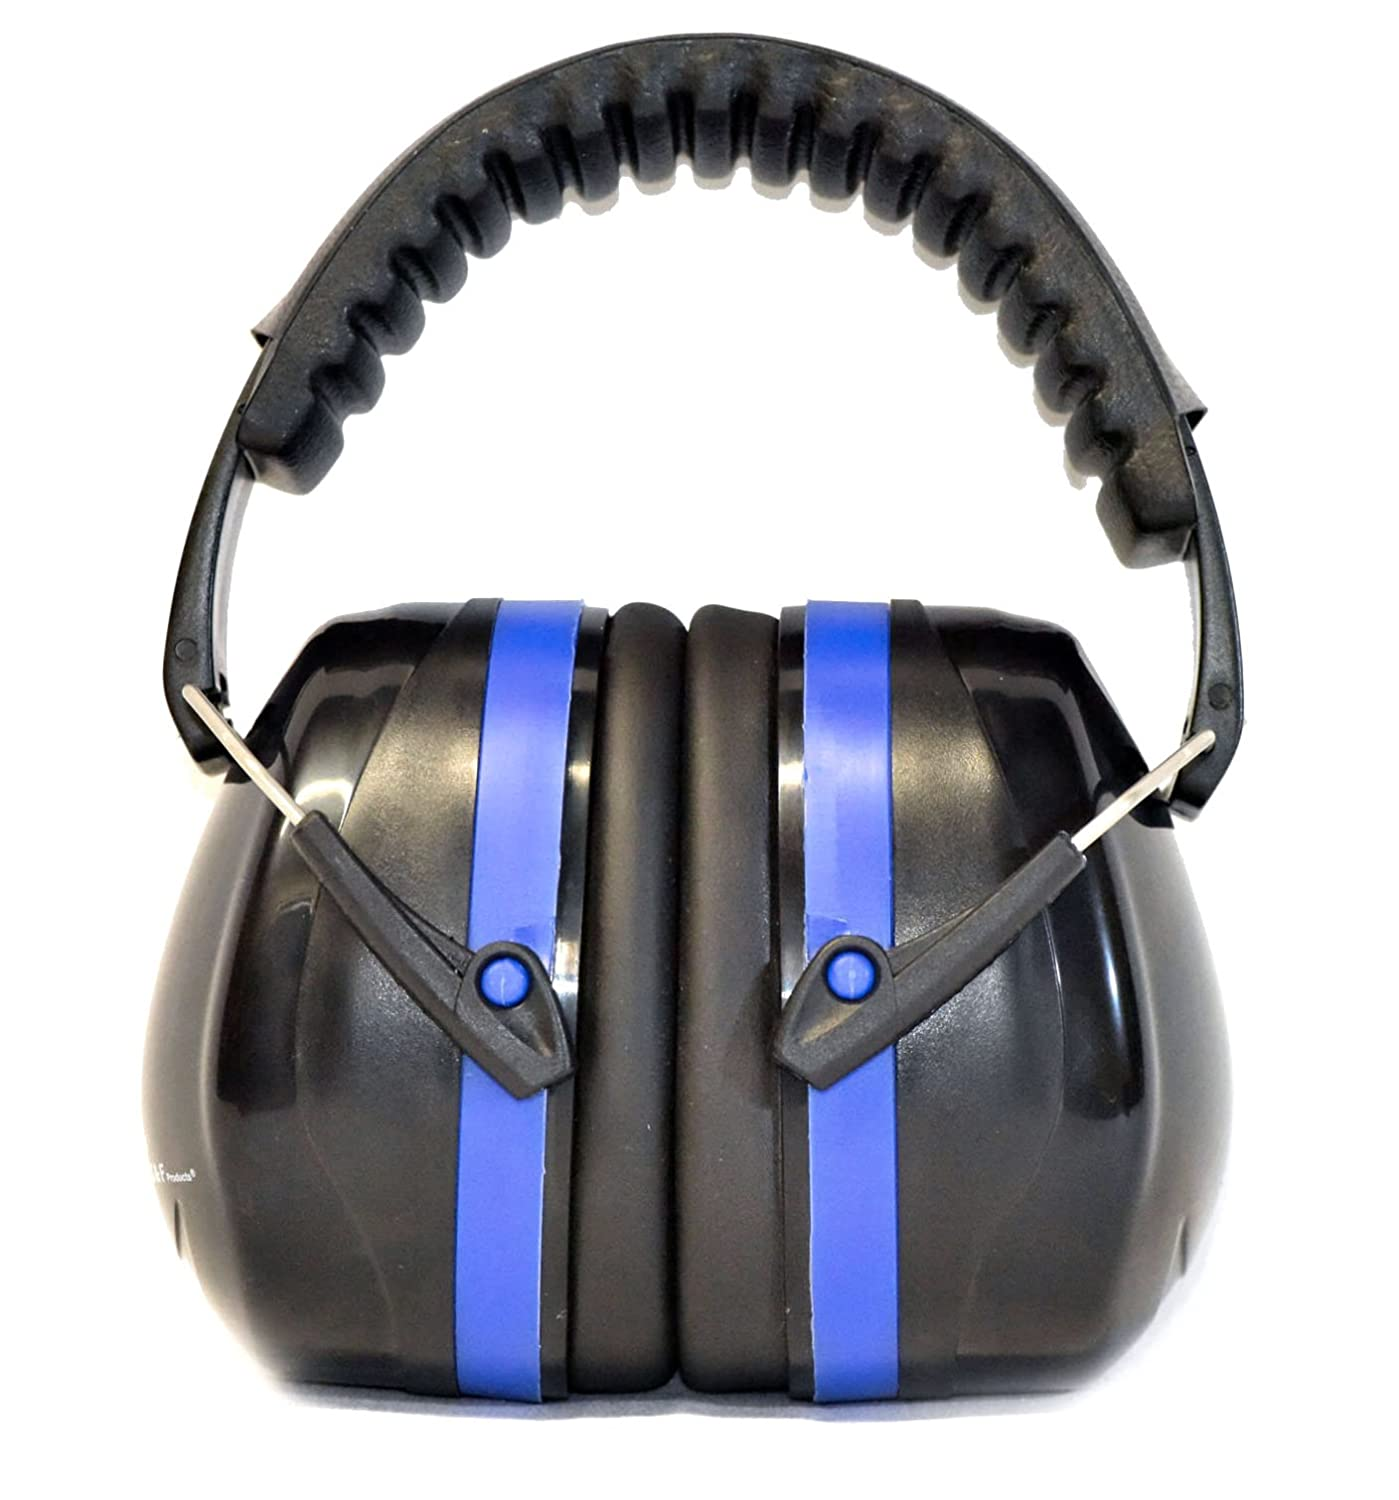 G & F 12010 34dB Highest NRR Safety Ear Muffs - Professional Ear Defenders for Shooting, Adjustable Headband Ear Protection, Shooting Hearing Protector Earmuffs Fits Adults to Kids, Blue 12020Blue